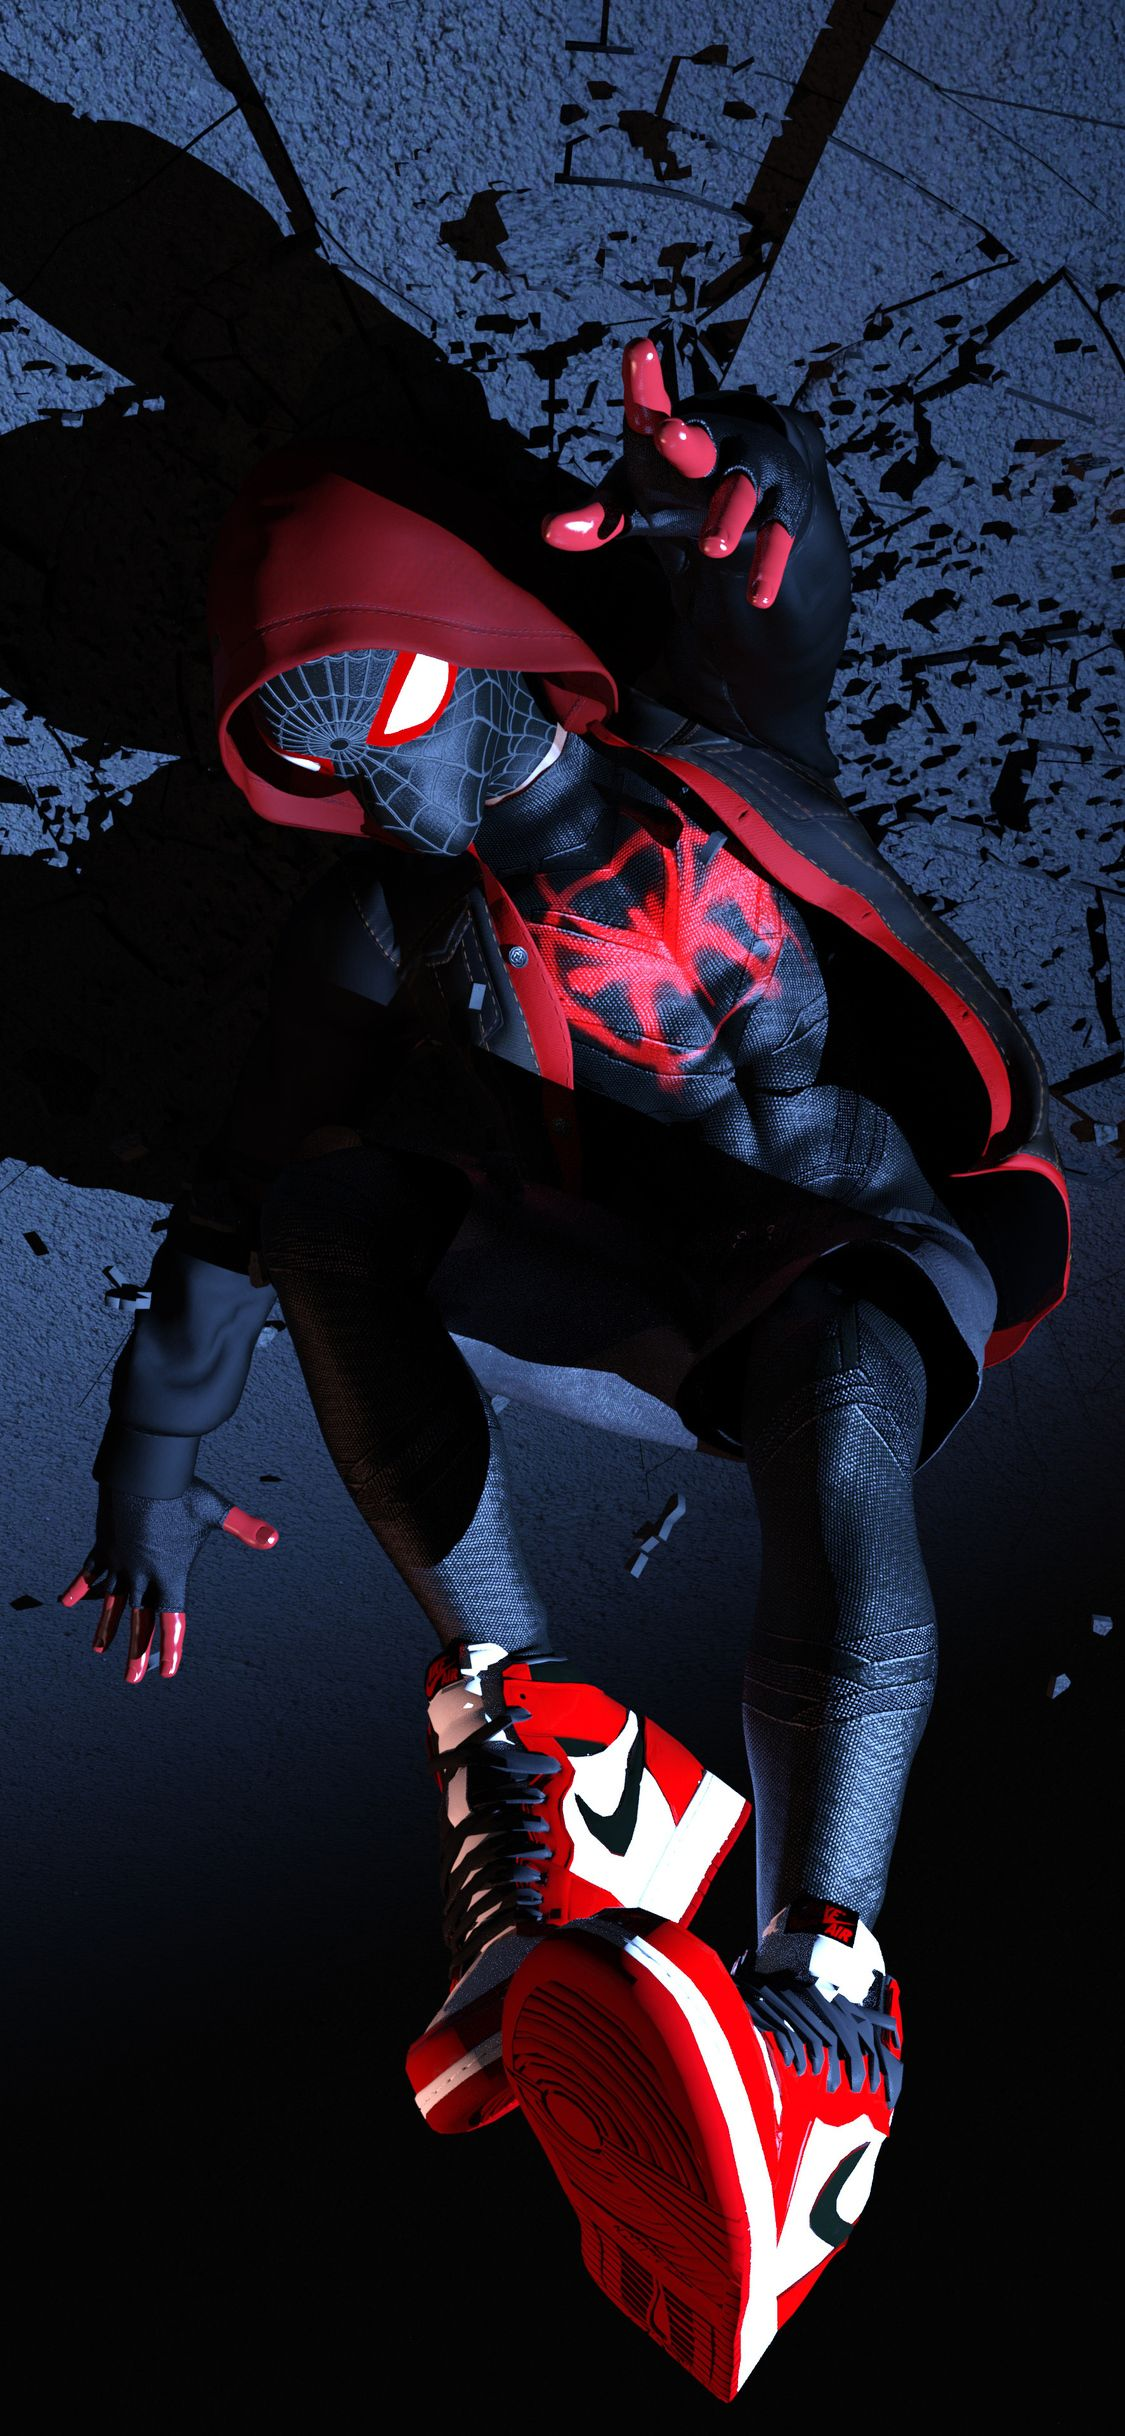 1125x2436 Spiderman Miles Morales 4k Iphone XS,Iphone 10